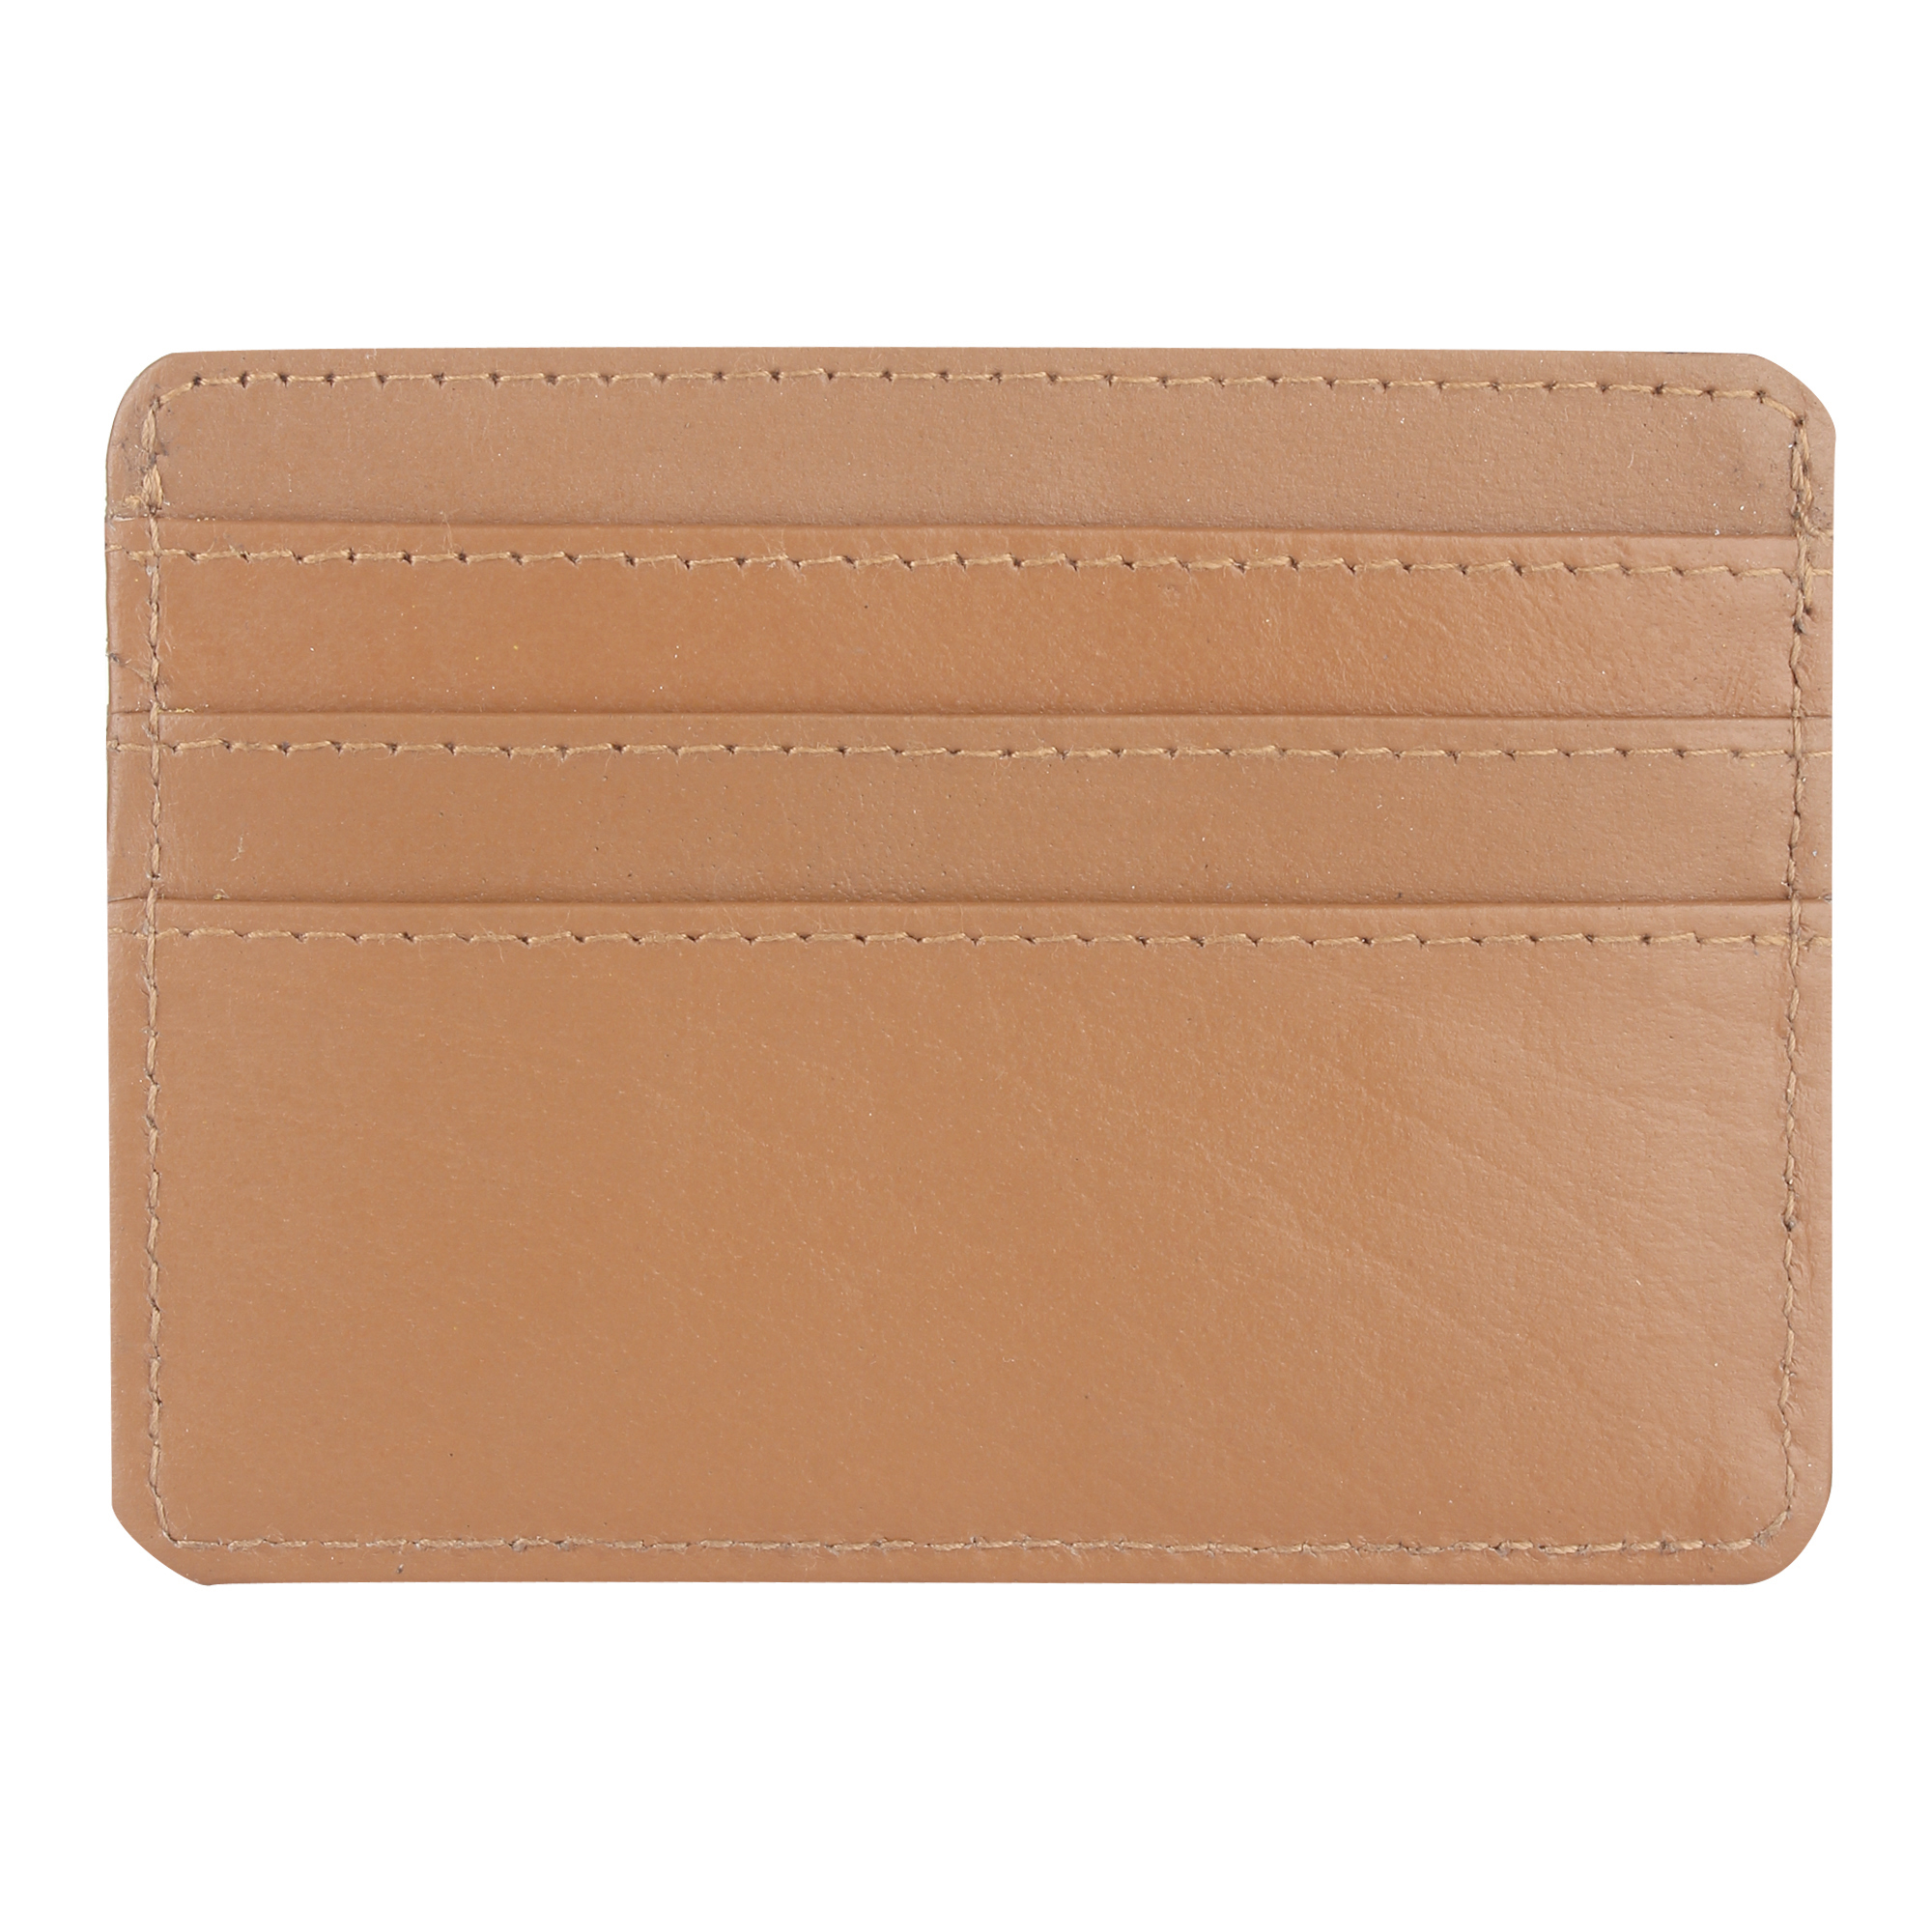 Leather Wallets Manufacturers in United-arab-emirates, Leather Wallets Suppliers in United-arab-emirates, Leather Wallets Wholesalers in United-arab-emirates, Leather Wallets Traders in United-arab-emirates